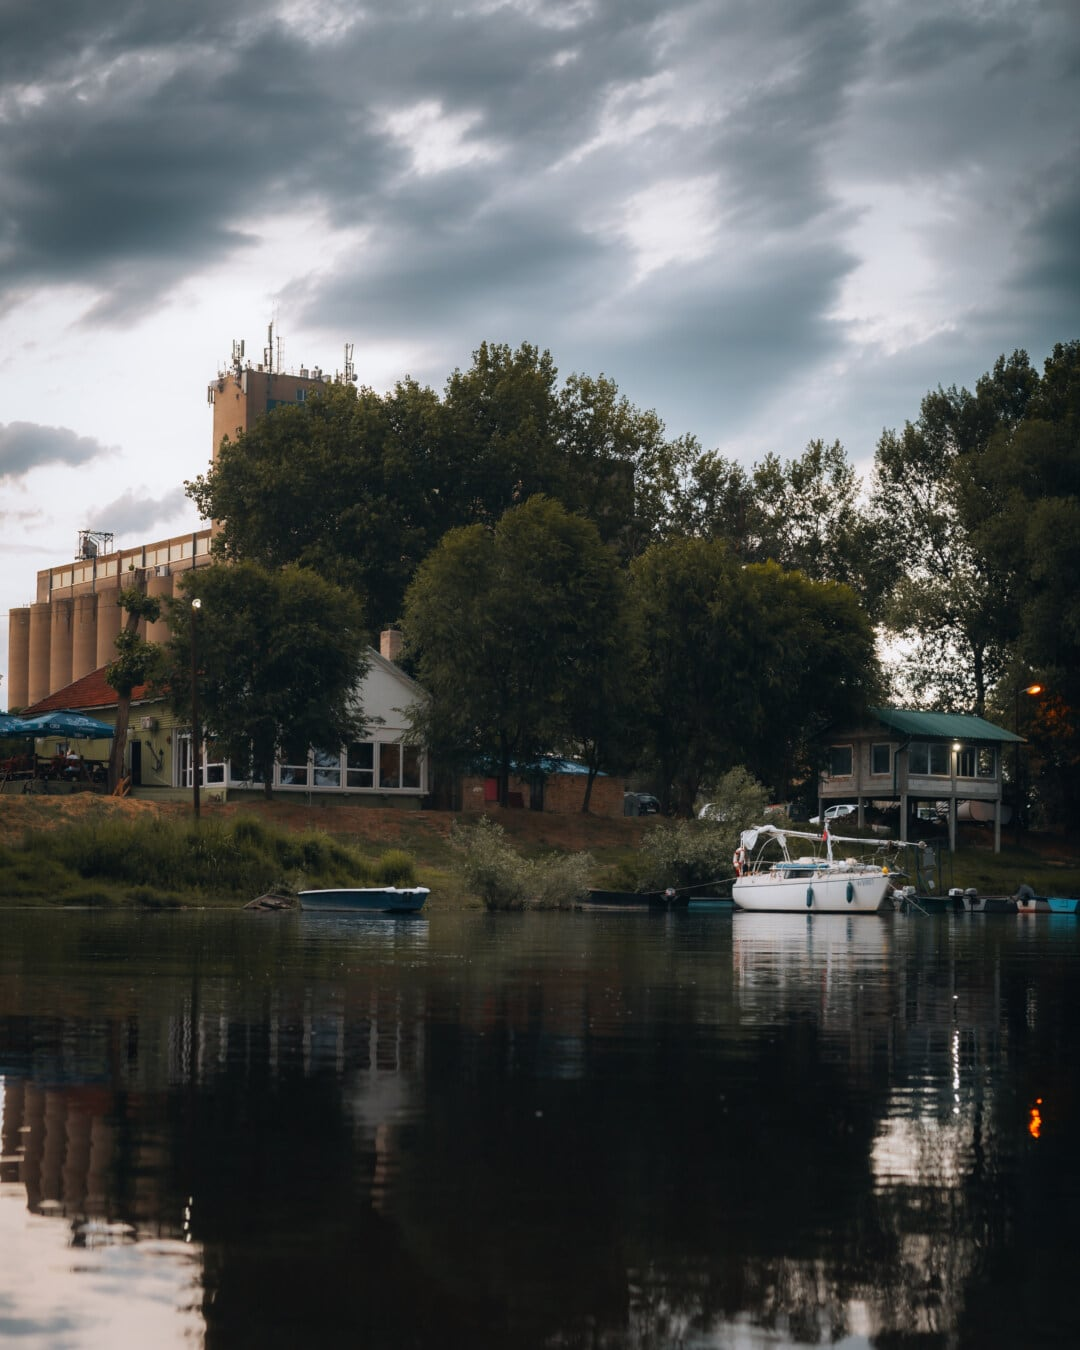 clouds, dark blue, urban area, lakeside, dock, resort area, home, river, water, reflection